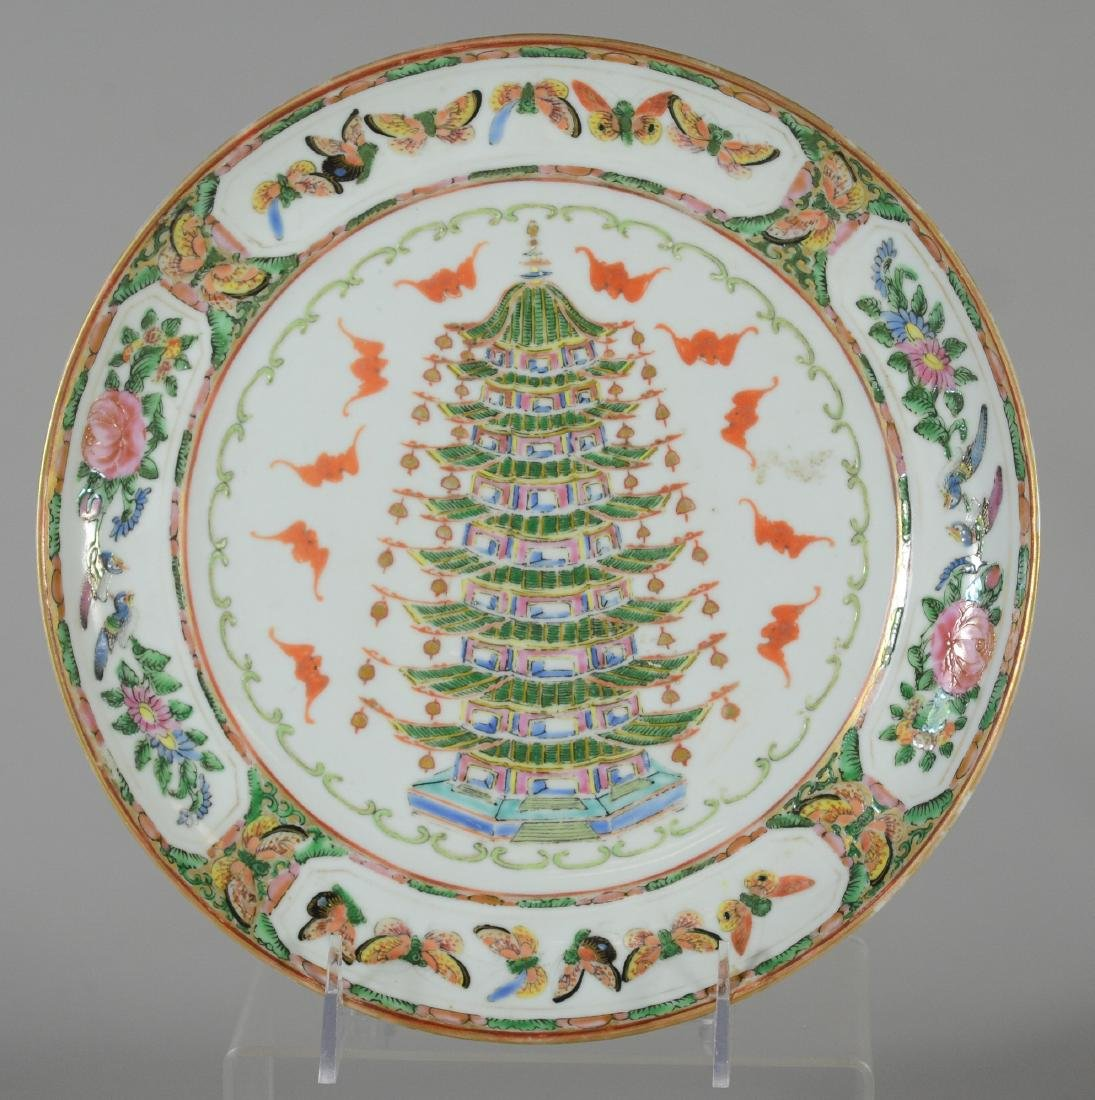 Famille Rose Chinese porcelain plate